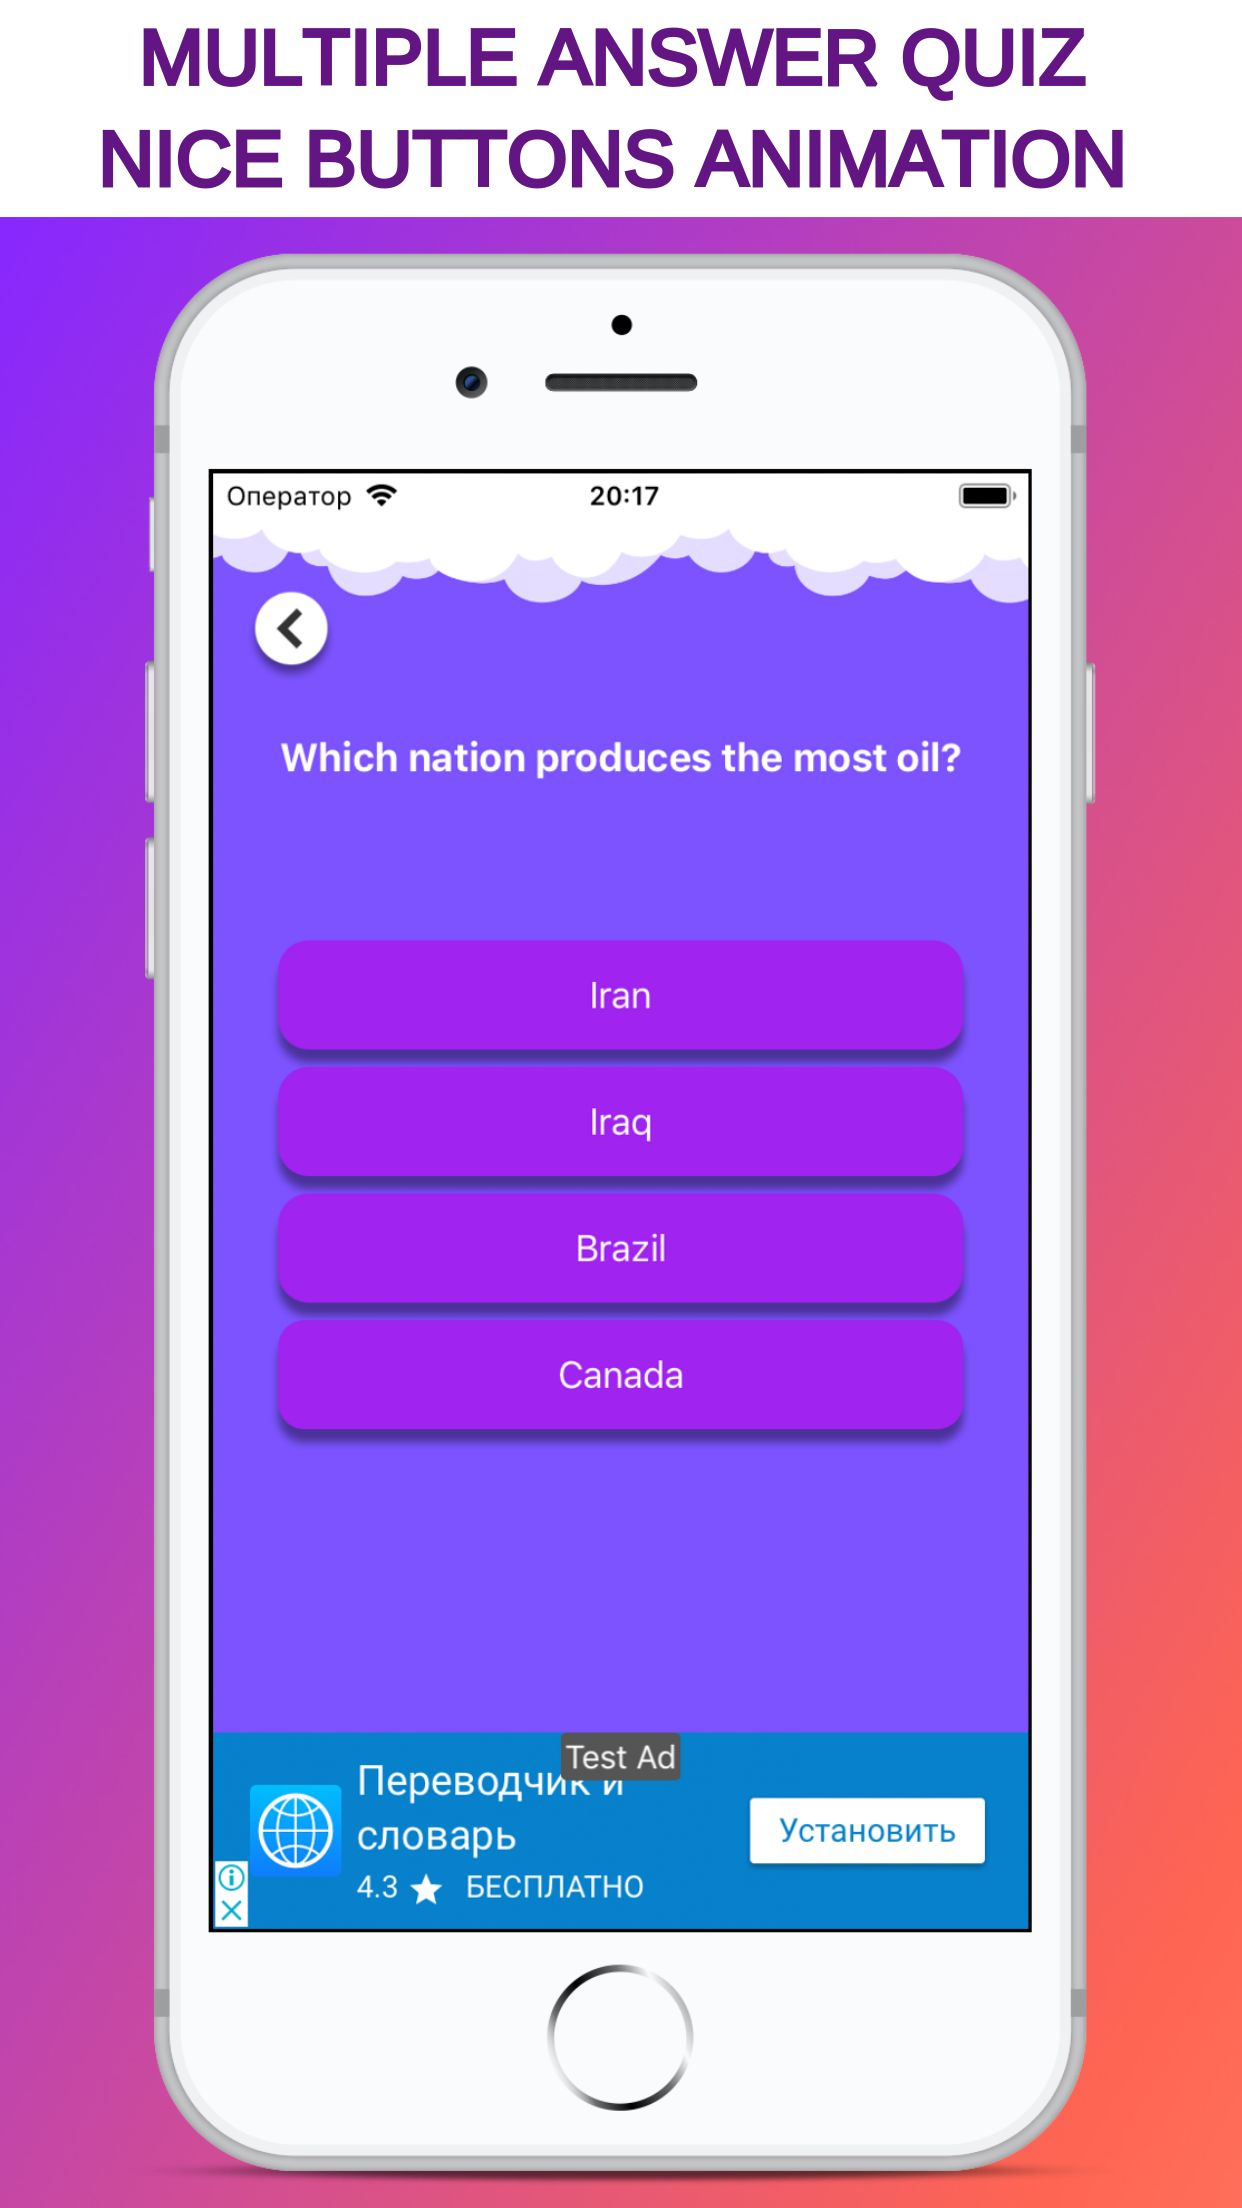 MyQuizz - iOS Multiple Answer Quiz Game Screenshot 5